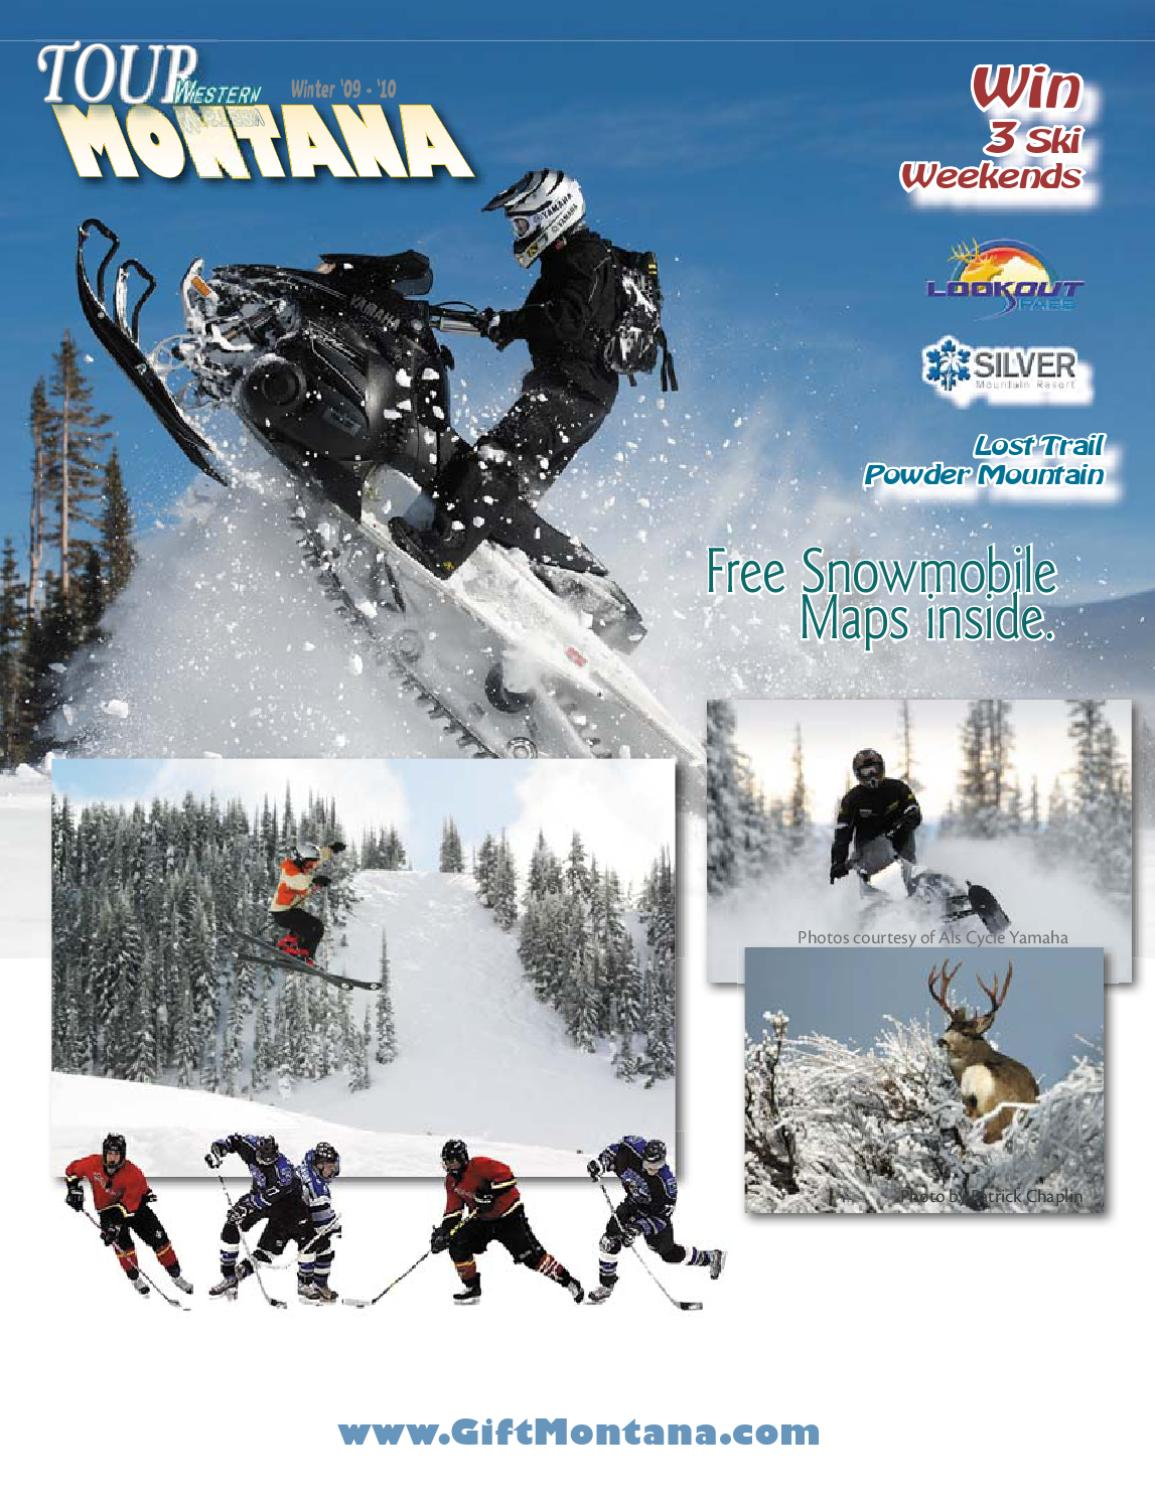 Tour Montana Winter 2010 By Sp2m Marketing Llc From